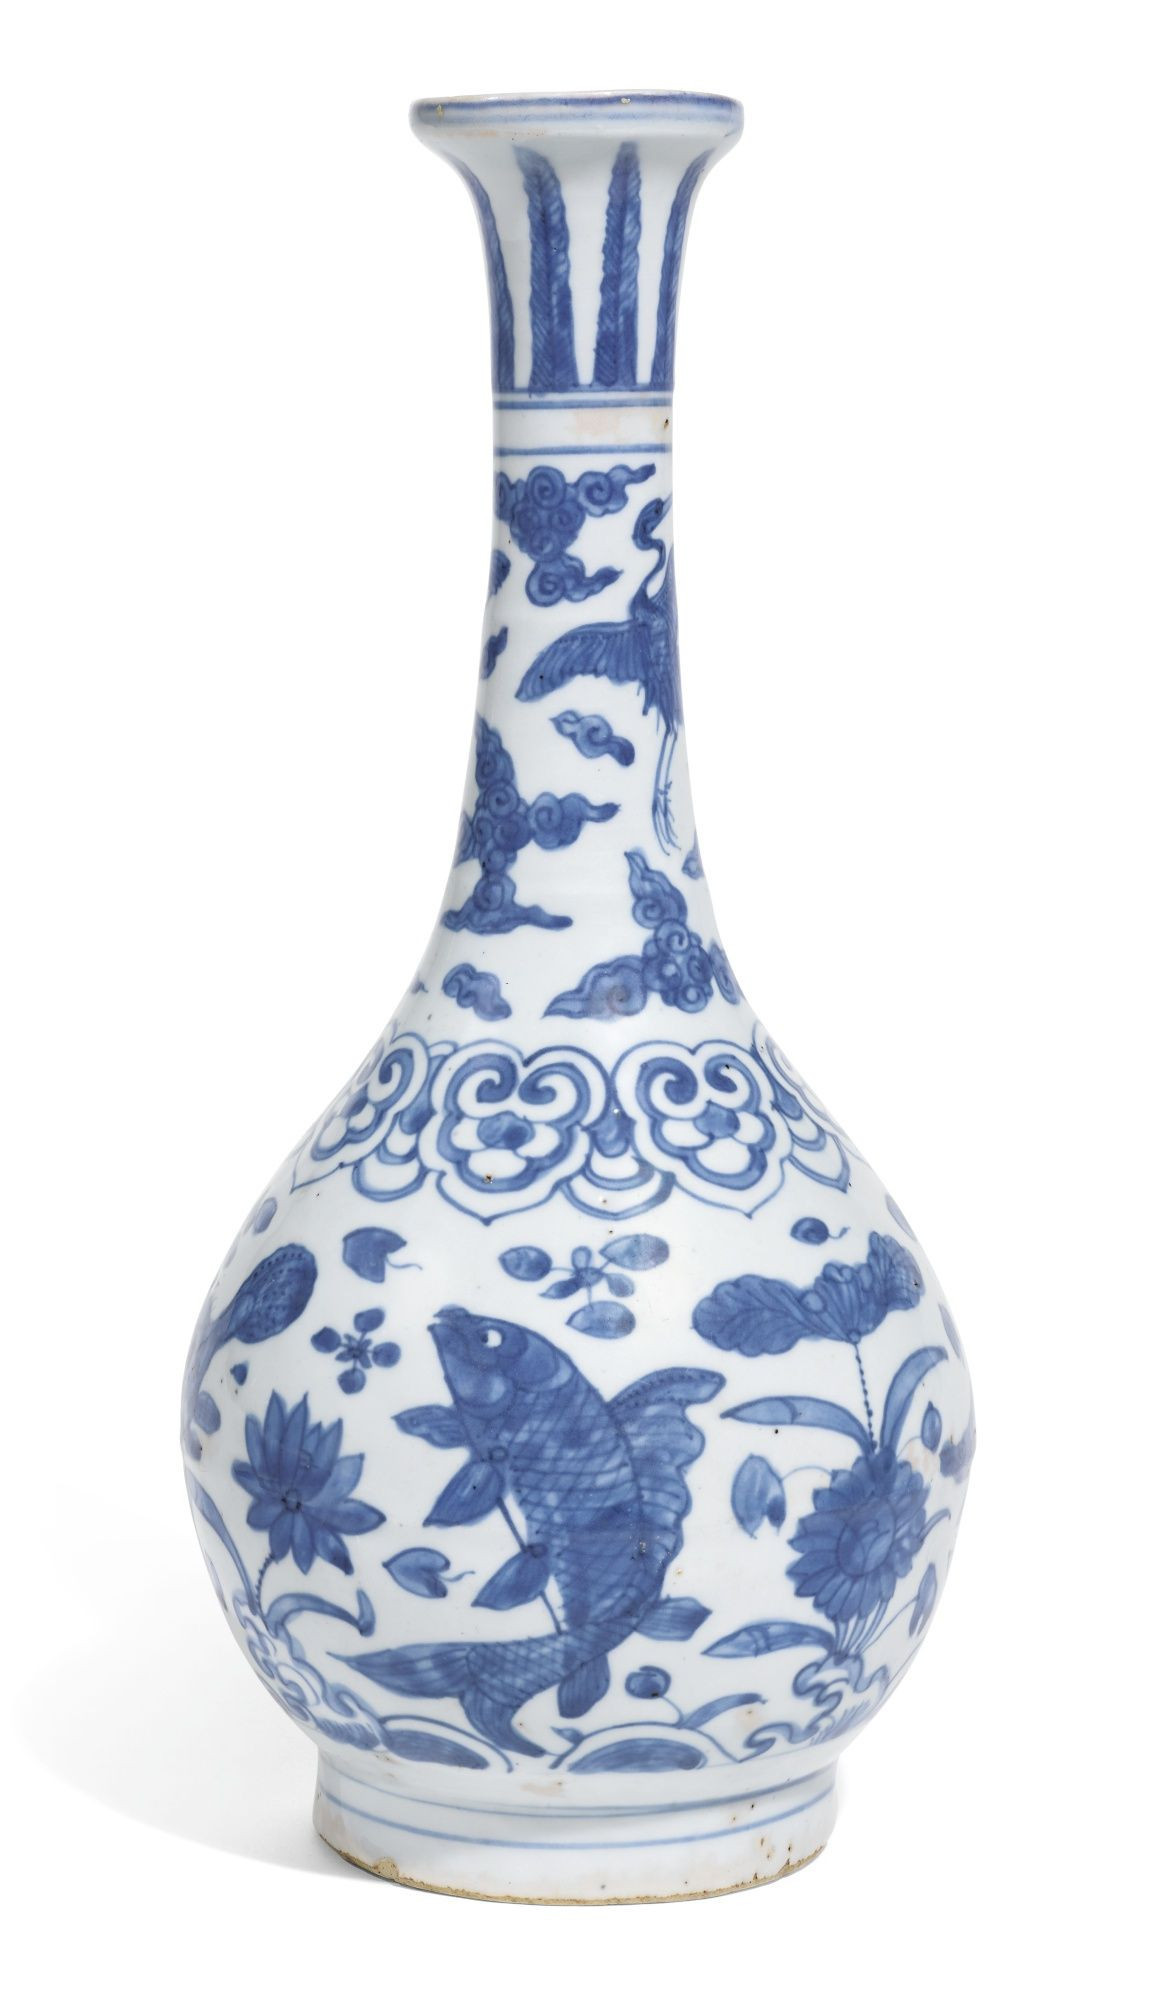 17 Recommended Small Chinese Blue and White Vases